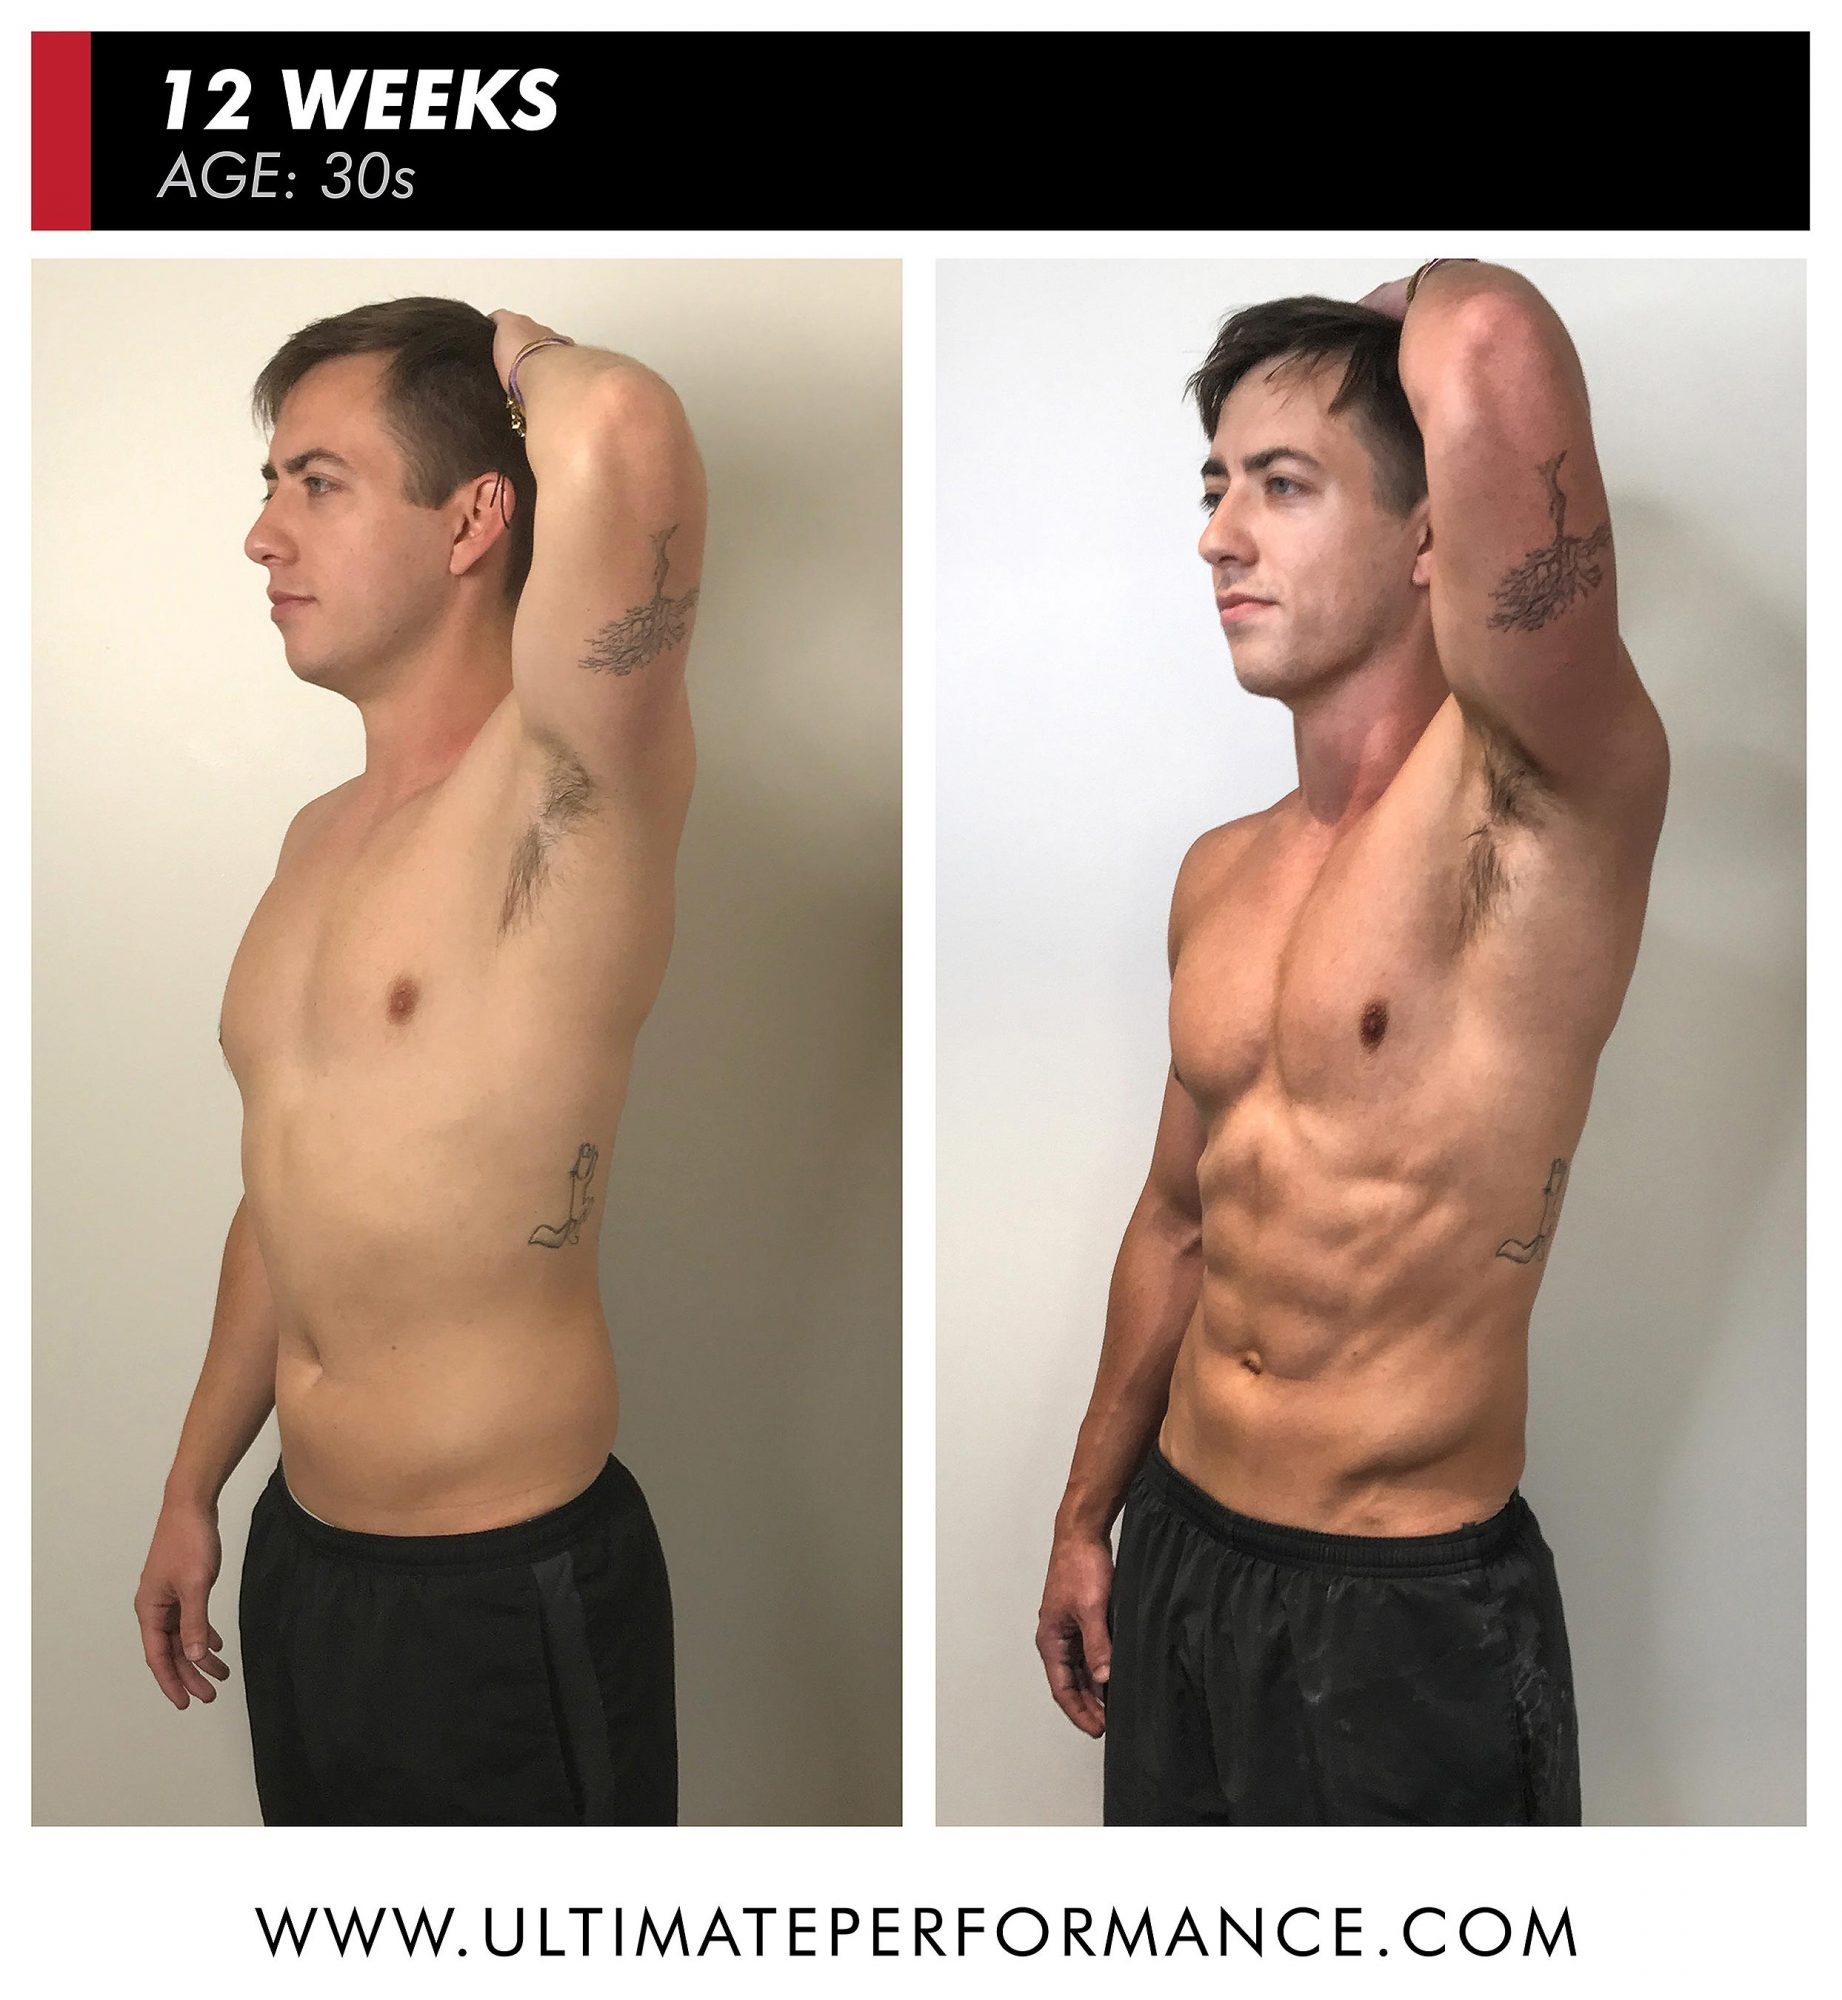 Kevin McHale body transformationCredit: Ultimate Performance